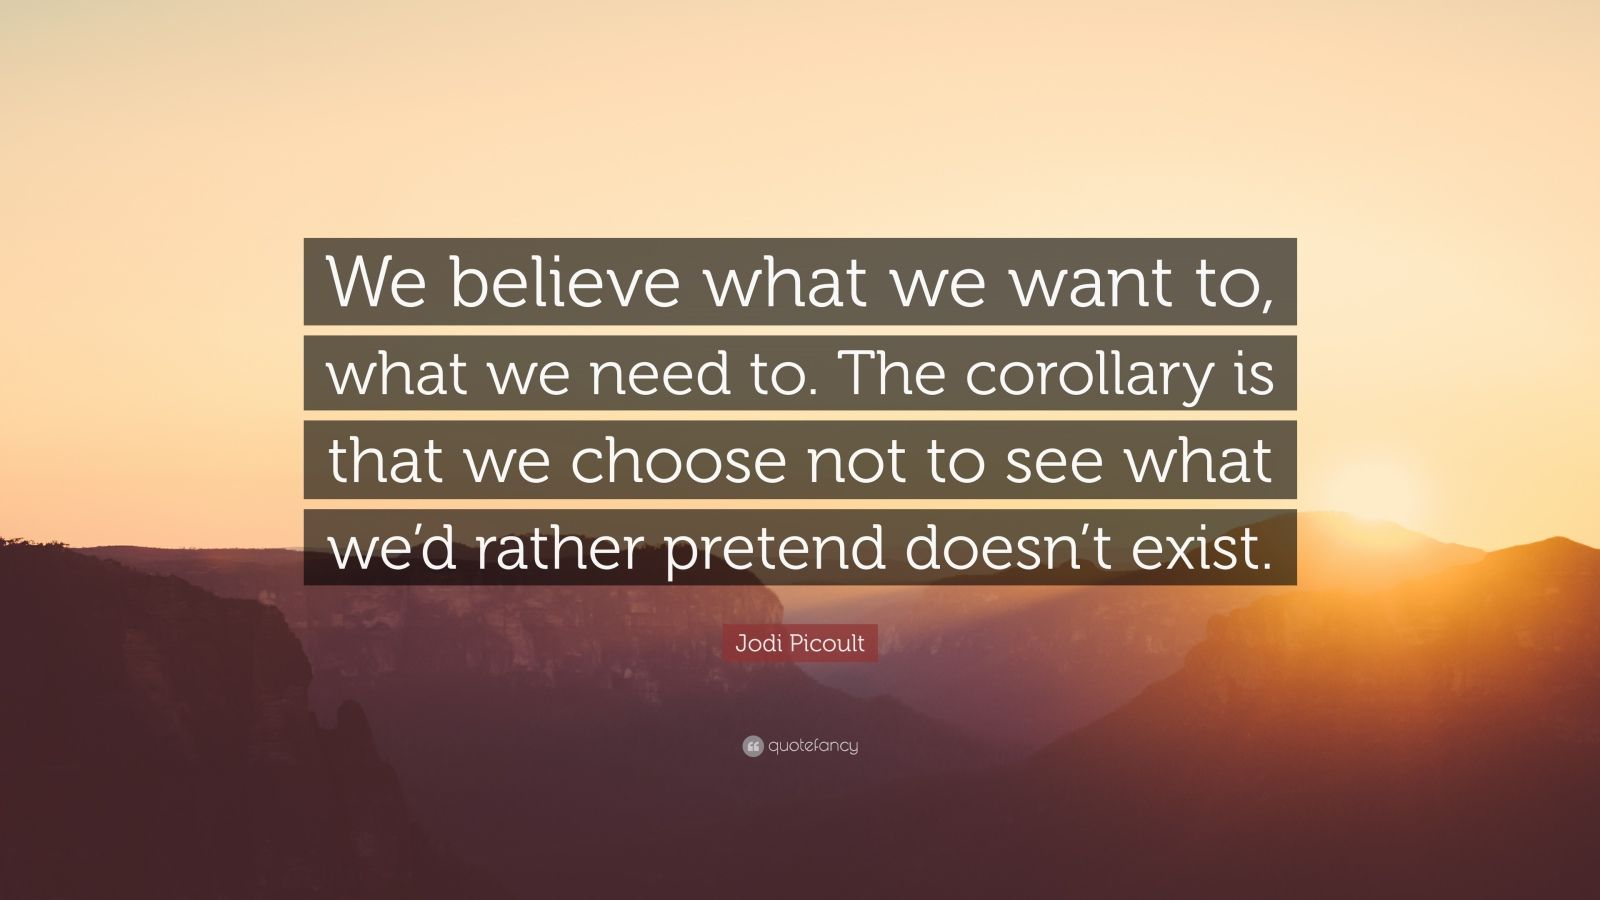 "Jodi Picoult Quote: ""We believe what we want to, what we need to. The corollary is that we choose not to see what we'd rather pretend doesn't exist."""